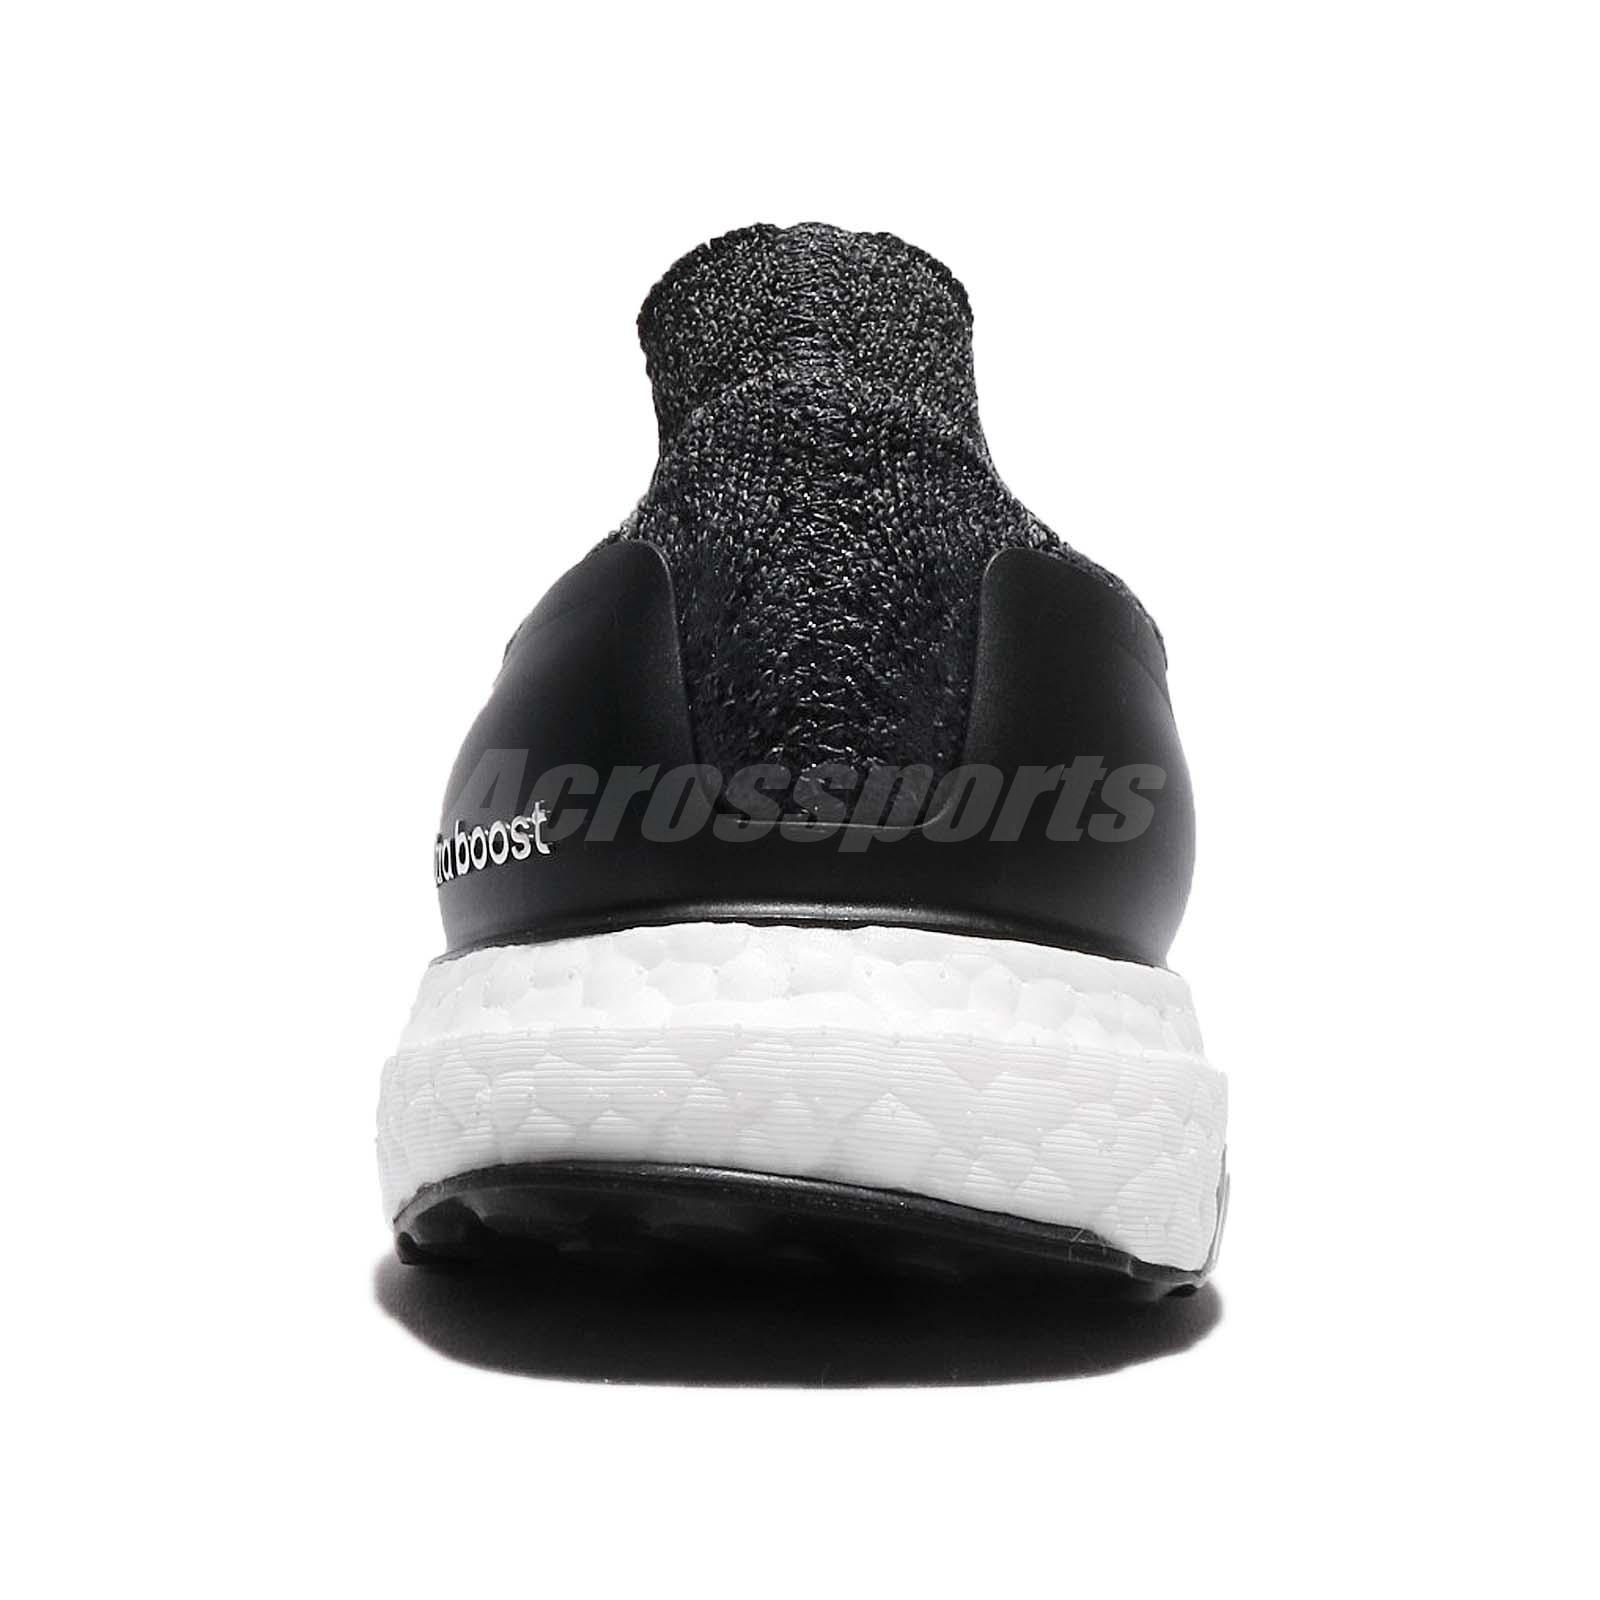 3b2ca18d1 adidas UltraBOOST Uncaged W Carbon Black Grey Women Running Shoes ...